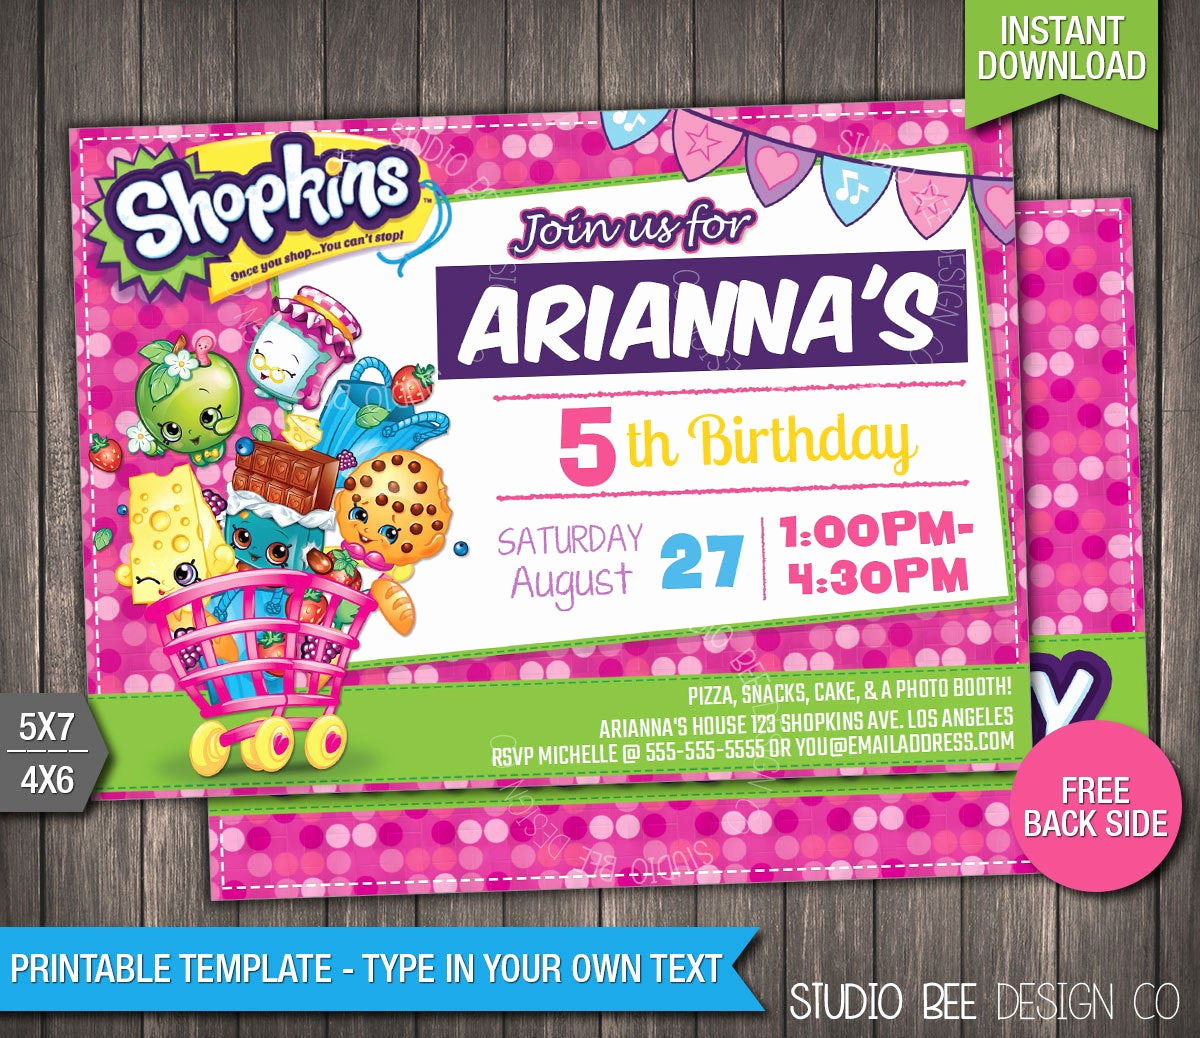 Shopkins Birthday Invitation Template Free New Off Shopkins Birthday Invitation Instant by